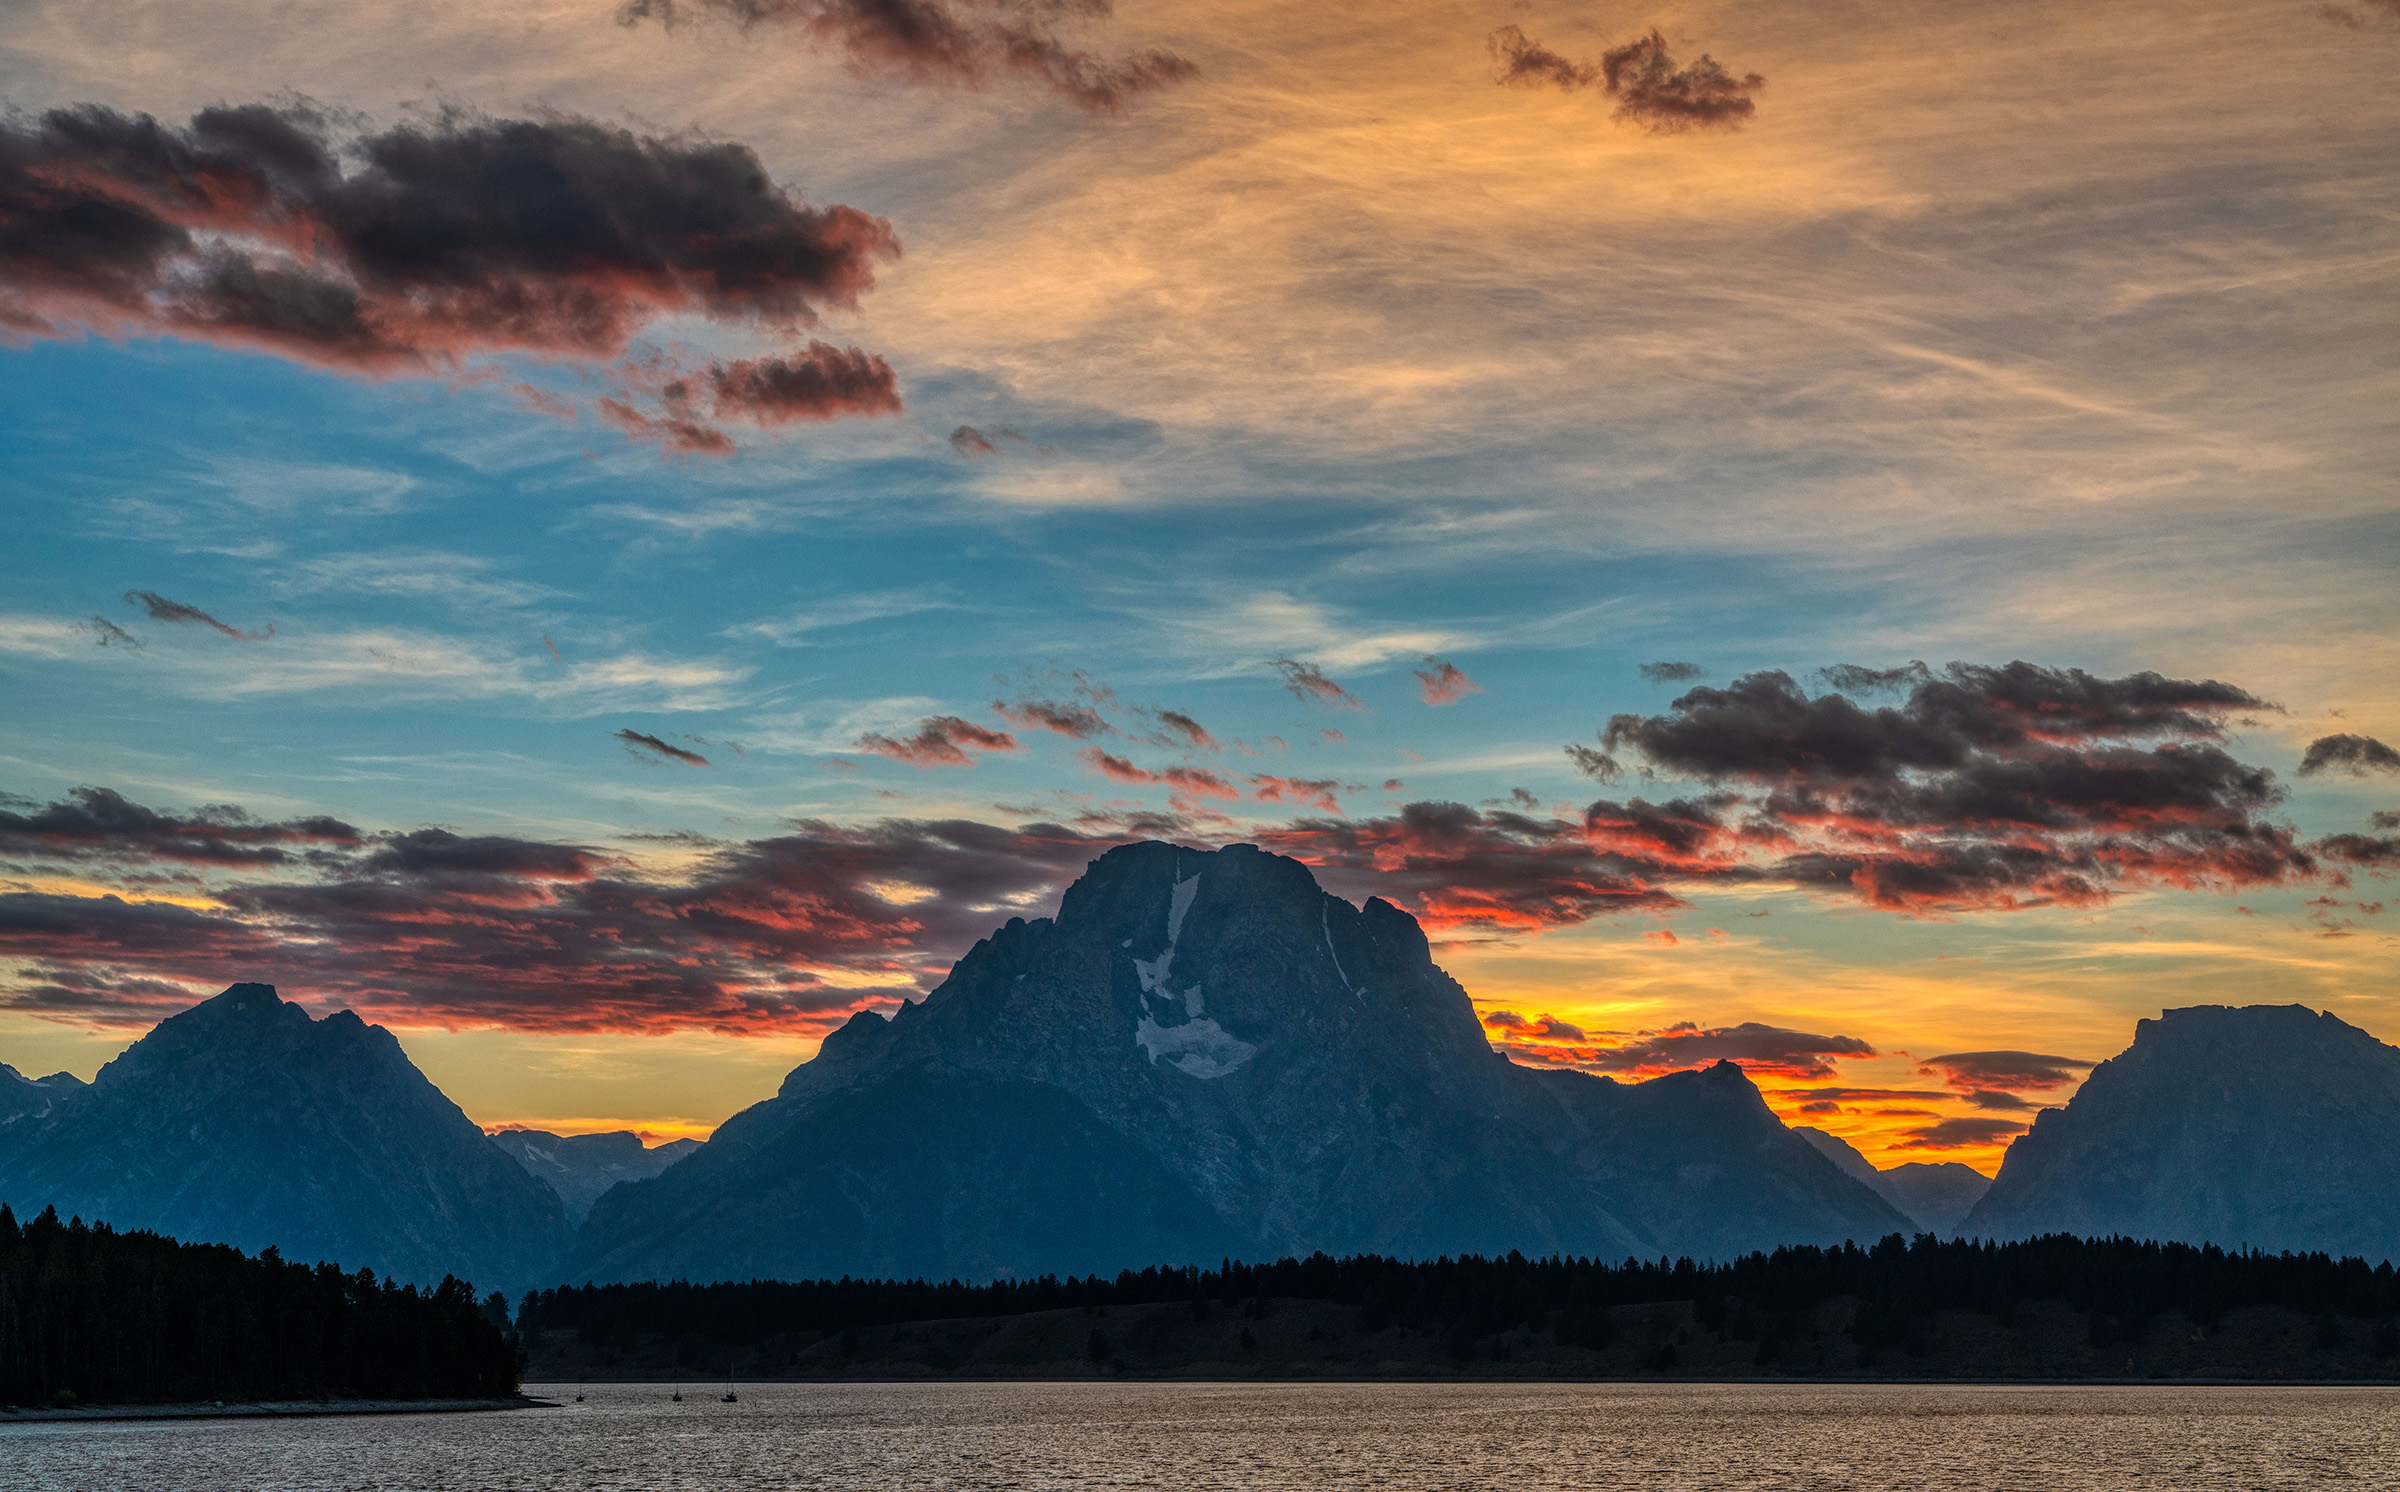 #sky, #grandteton, #nationalpark, #mountmoran, #sunset, #clouds, #backlit, #aurorahdr, #sony, #gtnp, #landscape